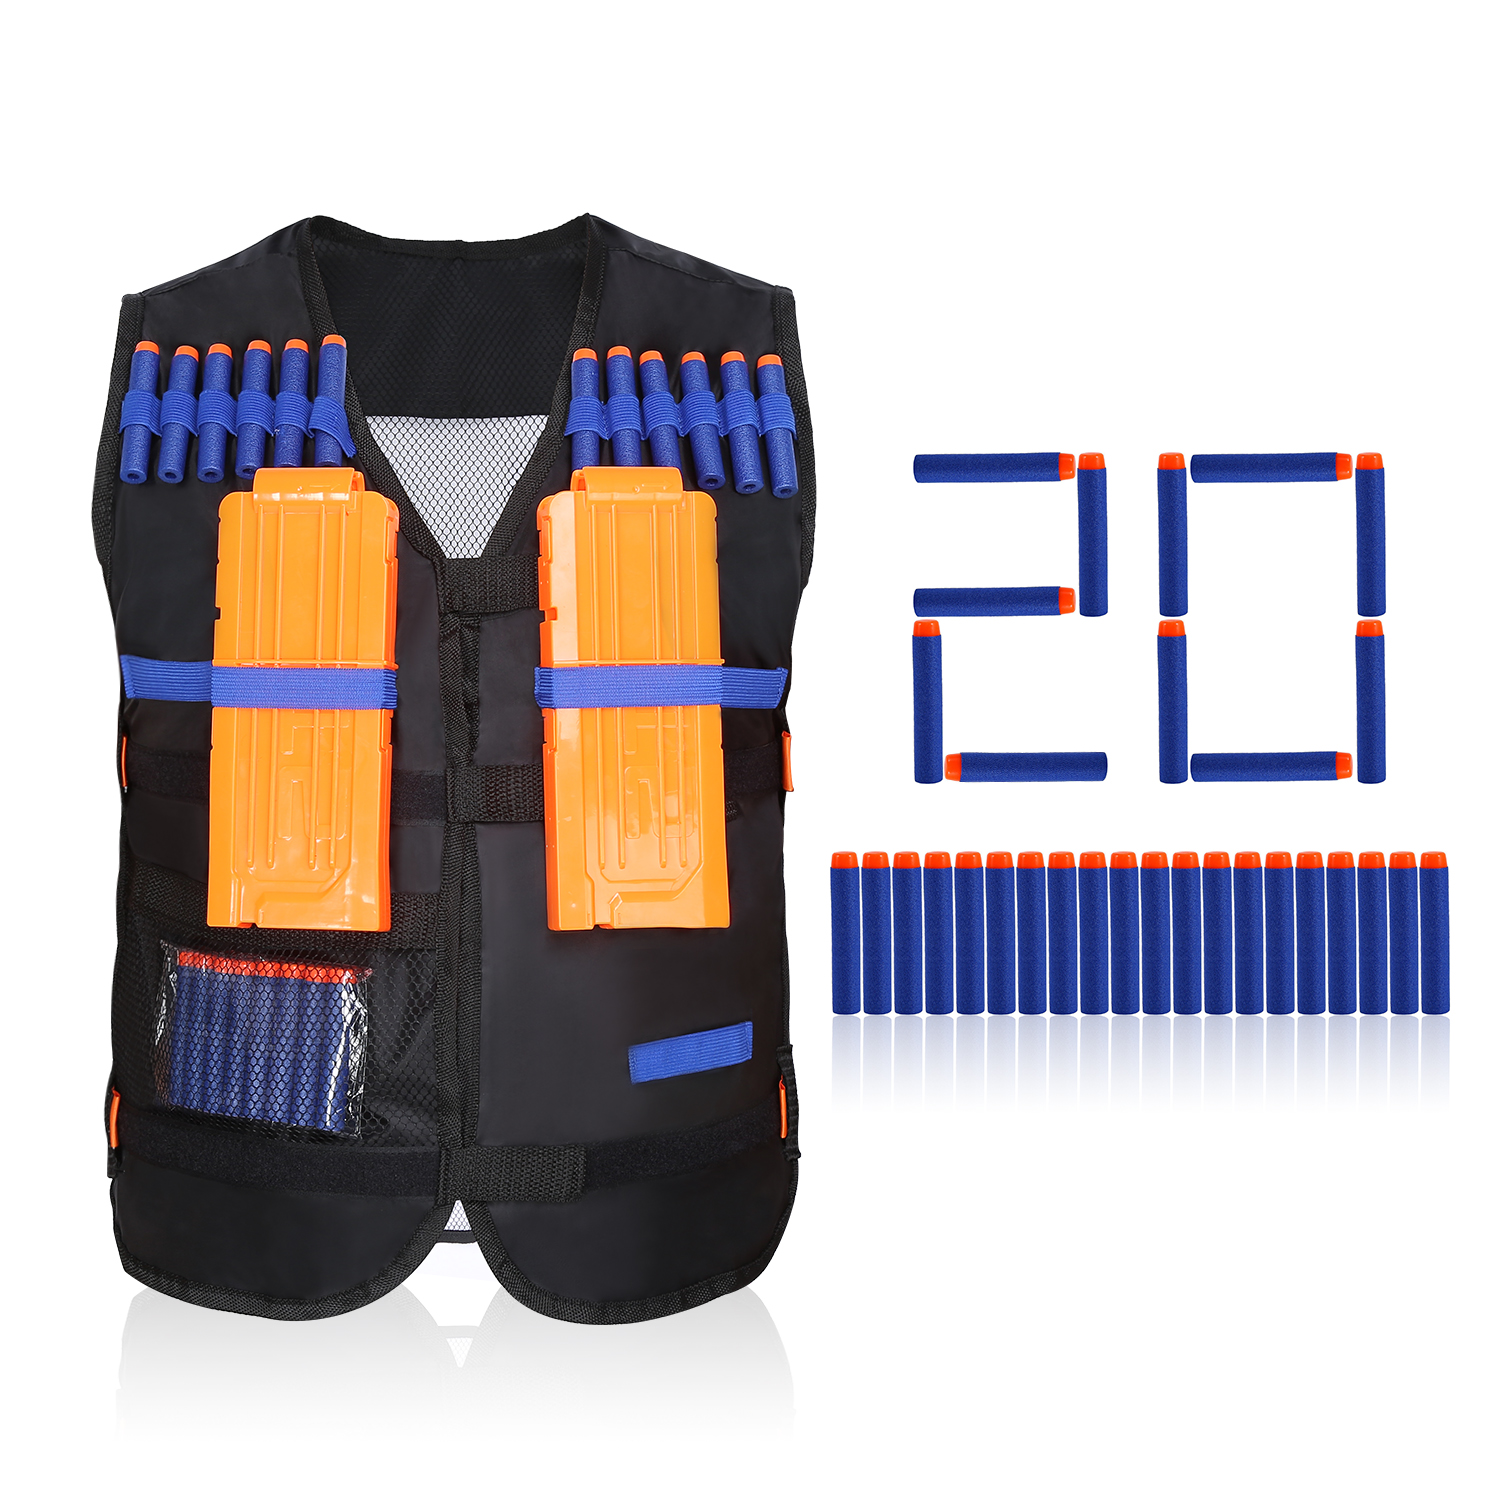 Kids Elite Tactical Vest with 20 Pcs Soft Foam Darts(Not Including 2 Clips) by